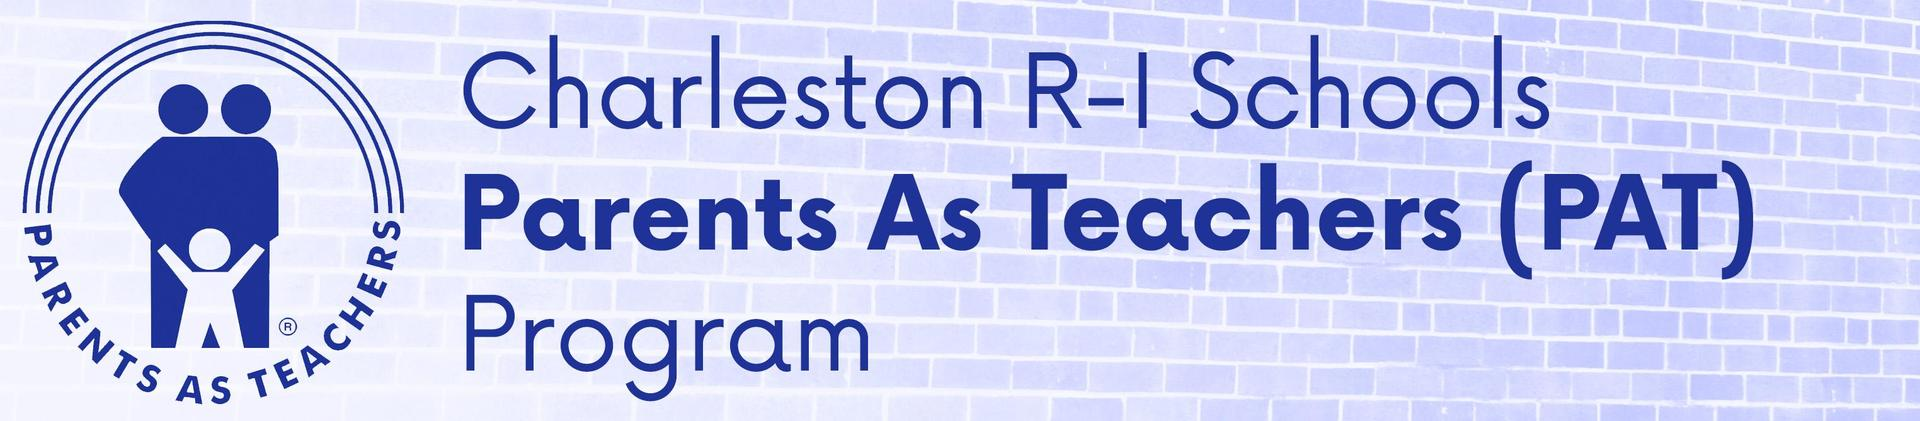 Charleston R-I Parents as Teachers Program header and logo